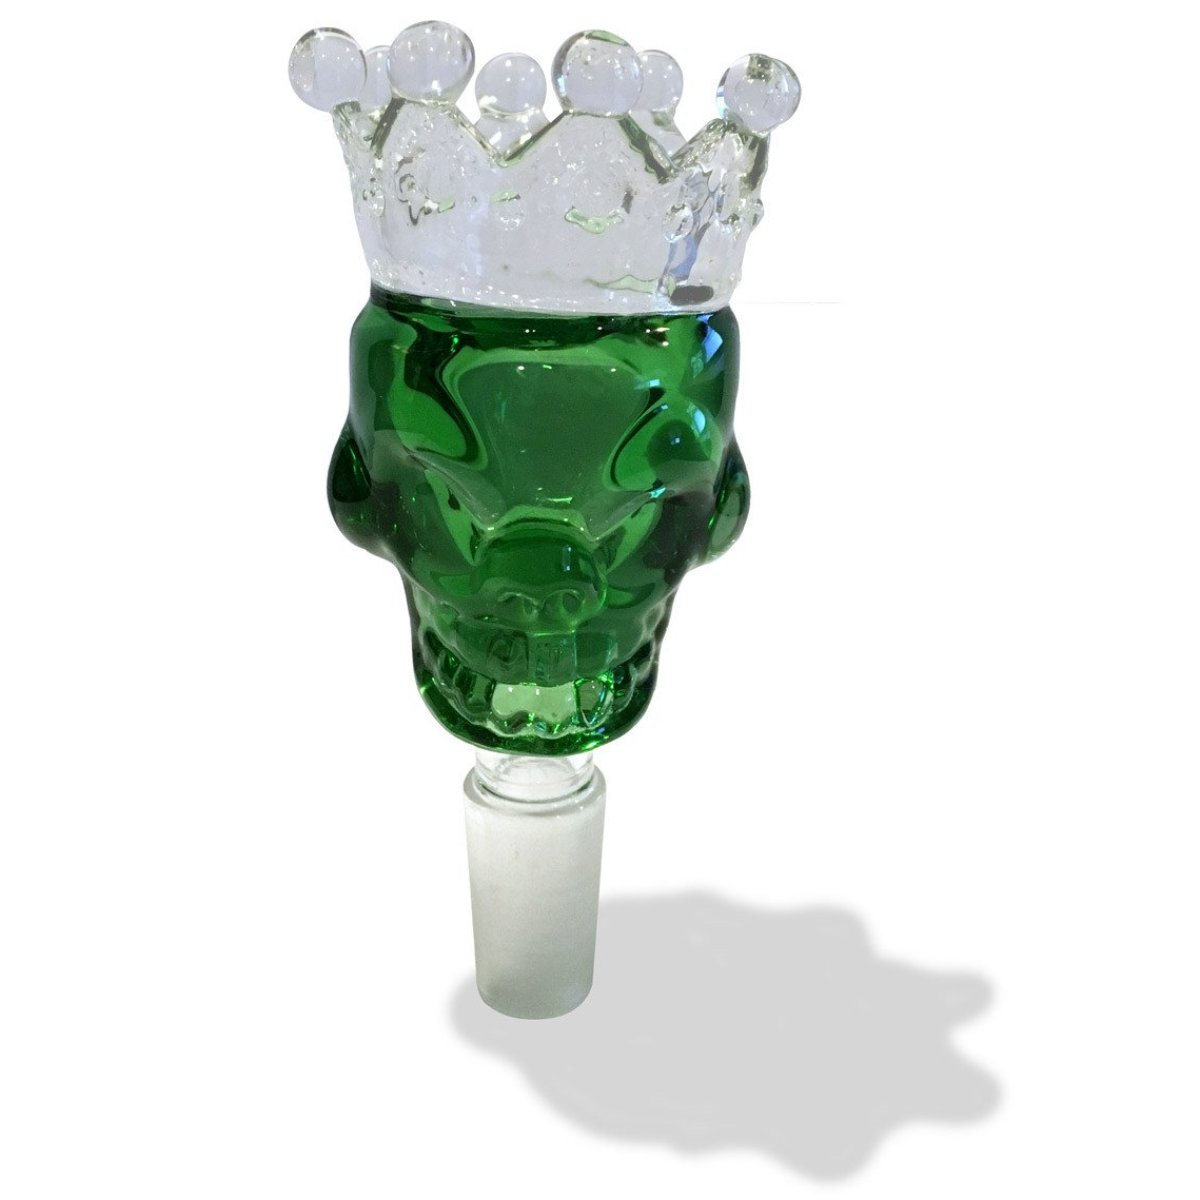 14mm Male Green Skull Crown Herb Holder - Green Goddess Supply